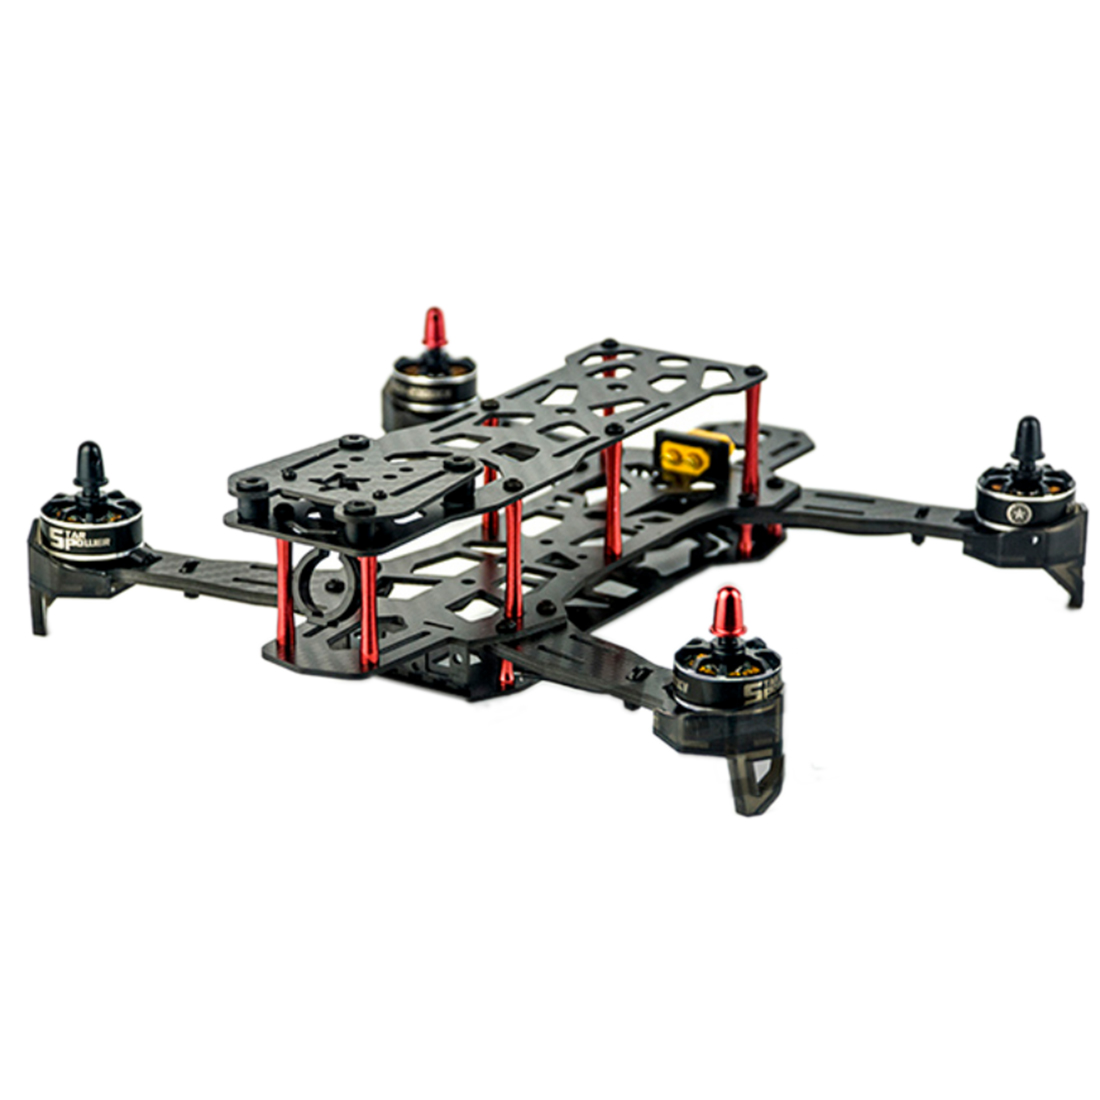 JUMPER 266 3K Carbon Fiber Racing Combo Frame Kit RC Helicopters Accessories<br><br>Aliexpress